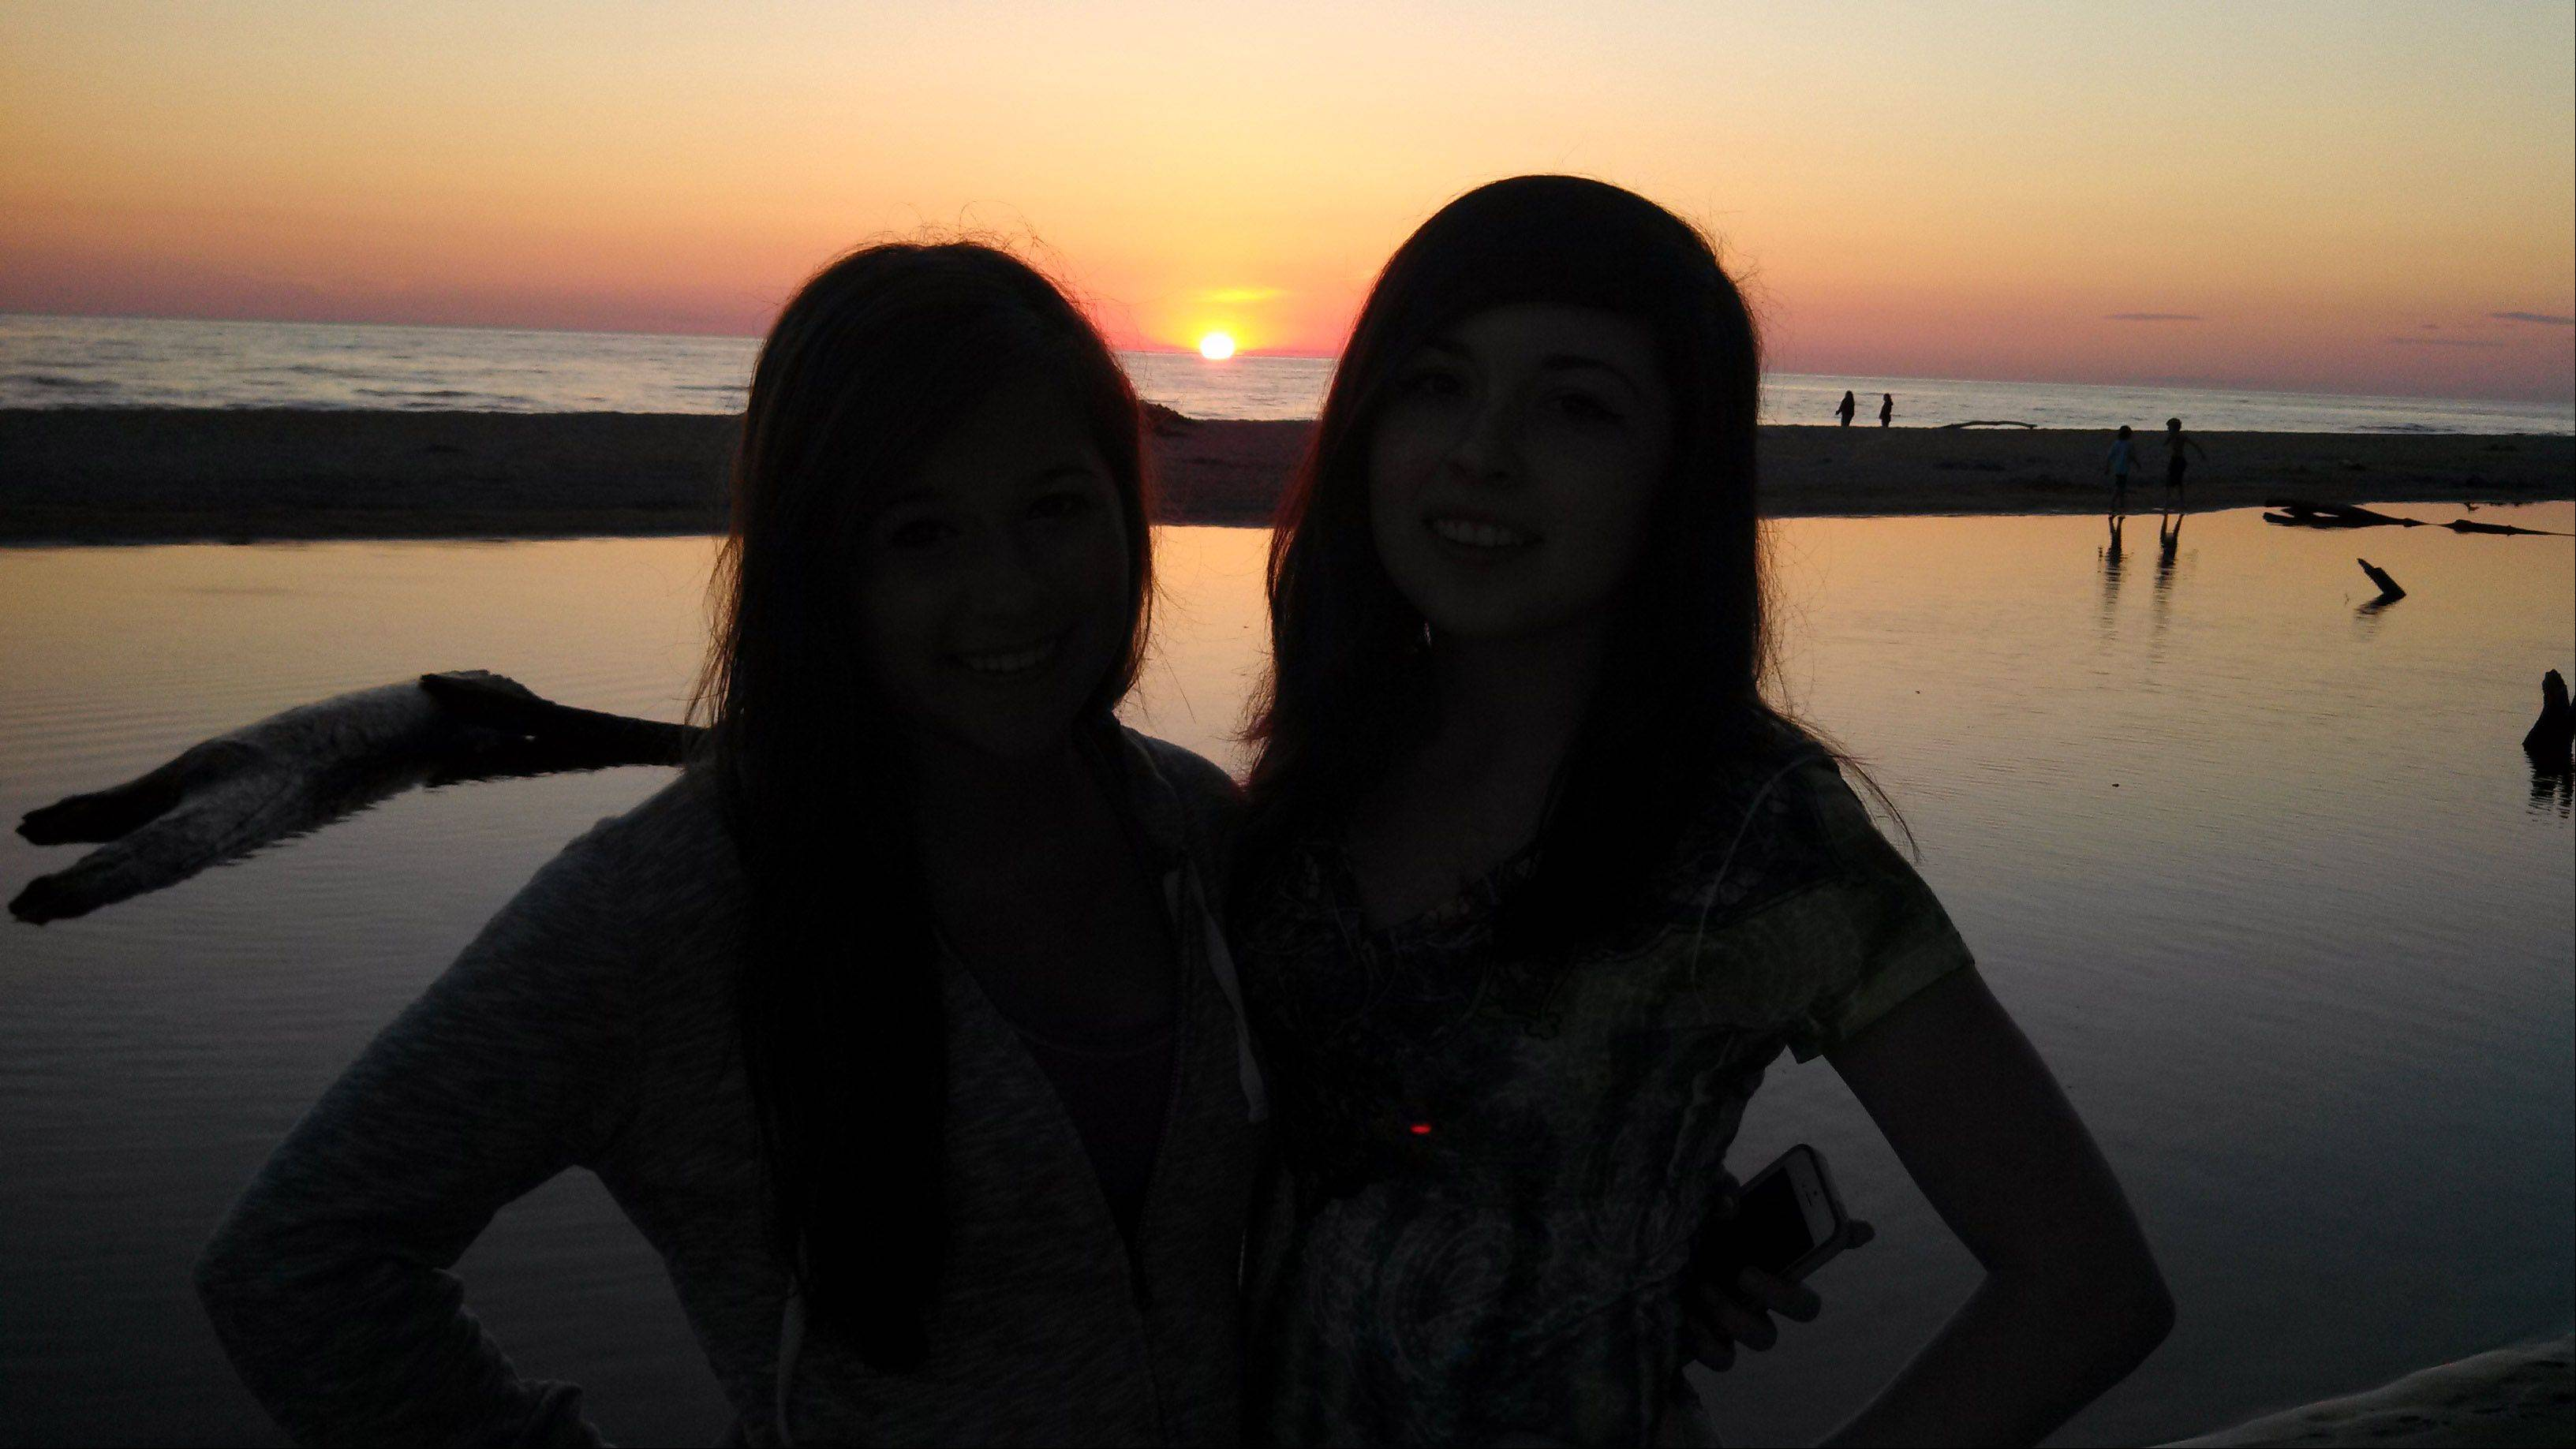 This silhouetted sunset photo of my two daughters was snapped during our recent camping trip to PJ Hoffmaster State Park in Michigan.